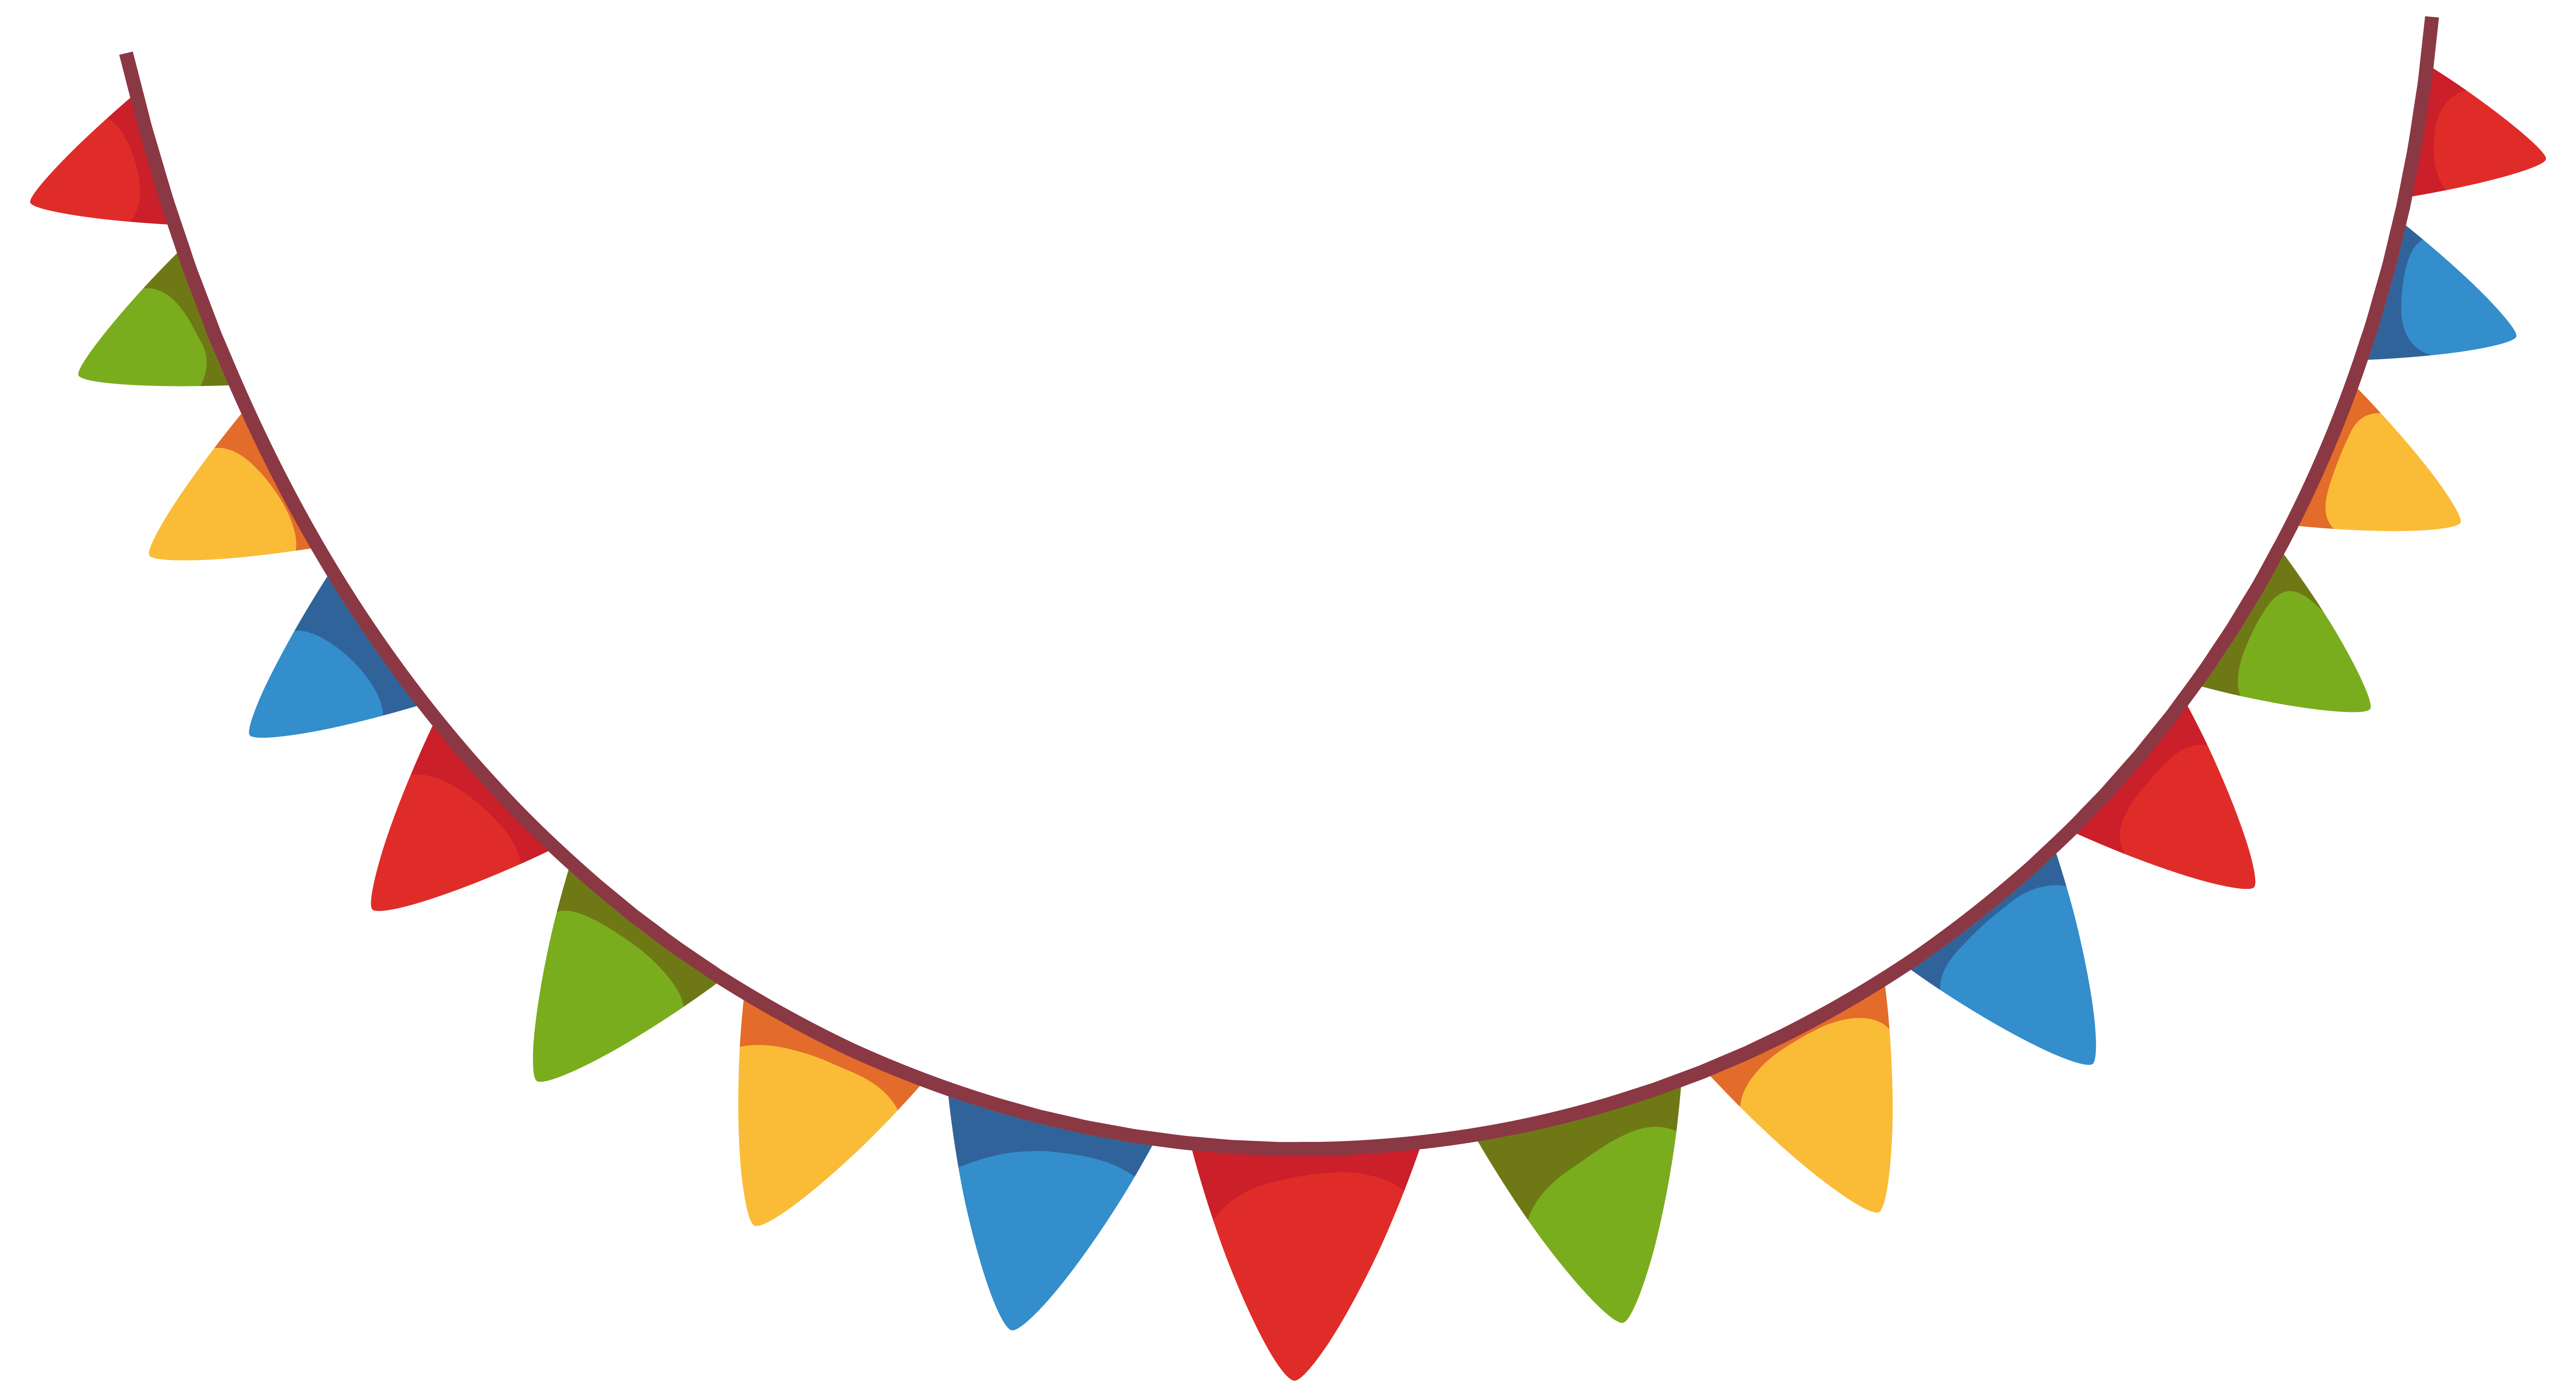 6323x3428 Party Streamer Decoration Png Clipart Pictureu200b Gallery